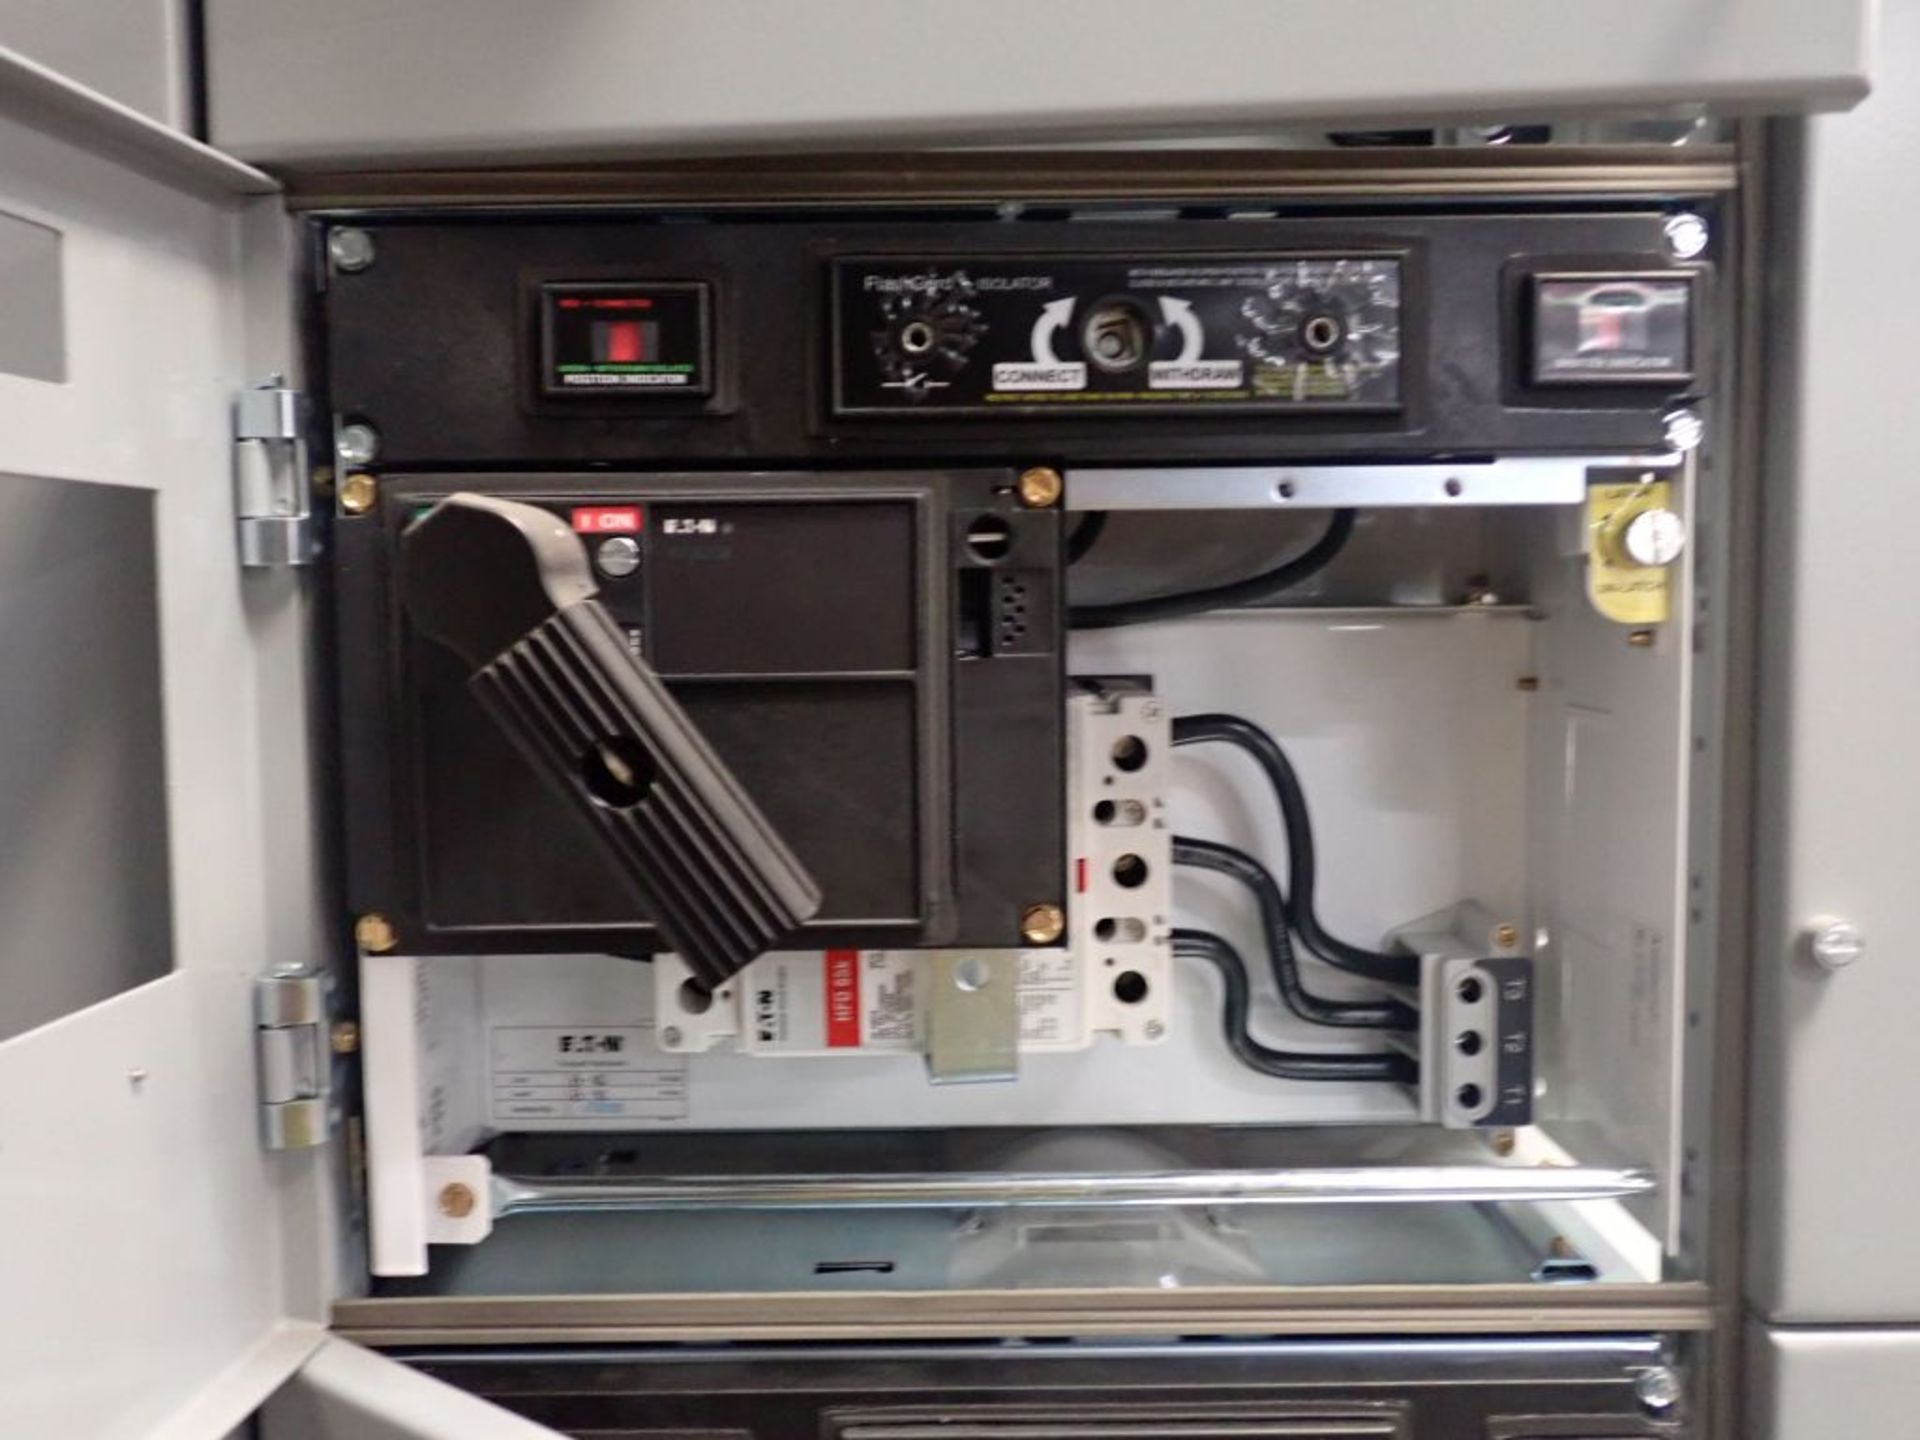 Eaton Freedom Flashgard Motor Control Center   (3) F216-15A-10HP; (1) FDRB-125A, with 150A - Image 45 of 57